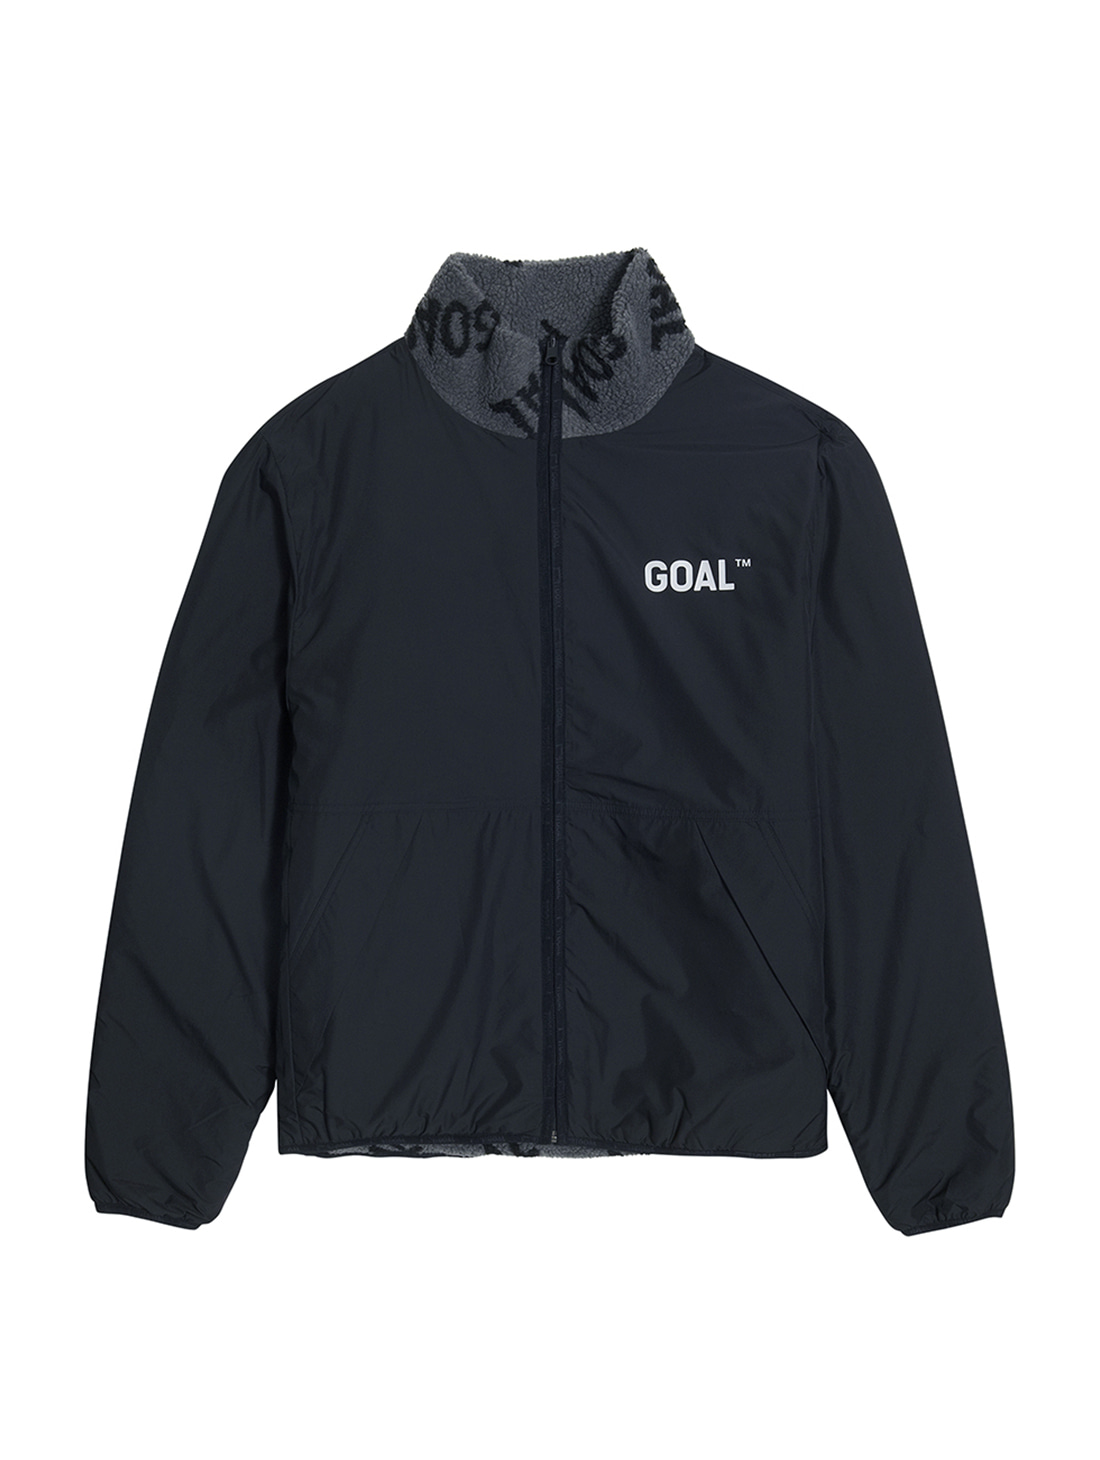 REVERSIBLE FLEECE JACKET - GRAY/BLACK - 1차 완판(2차 입고 완료)